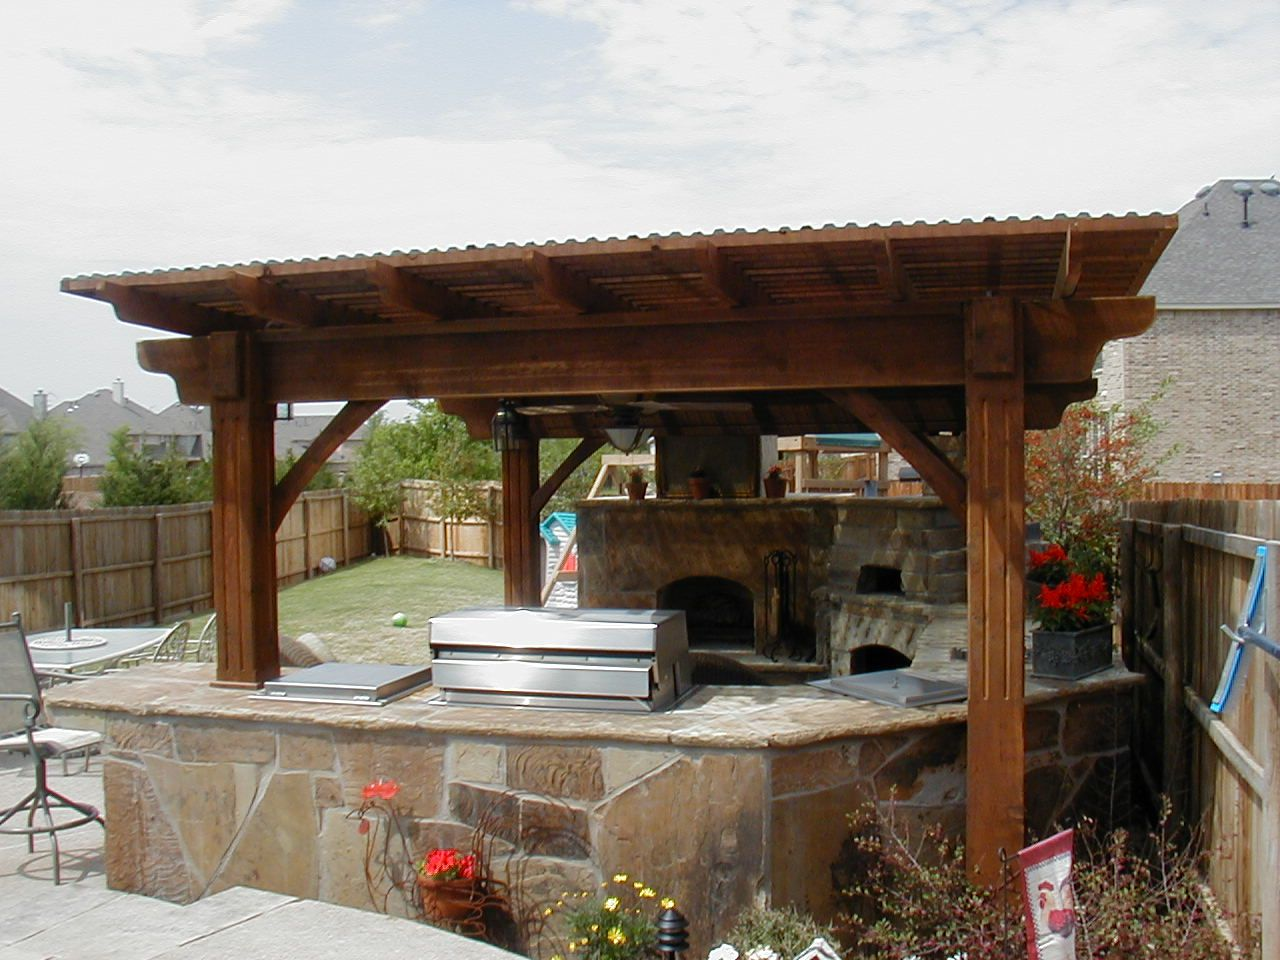 Outdoor Kitchen Roof Covers Welcome To Wayray The Ultimate Outdoor Experience Photo Gallery Gazebo Outdoor Fireplace Outdoor Kitchen Lighting